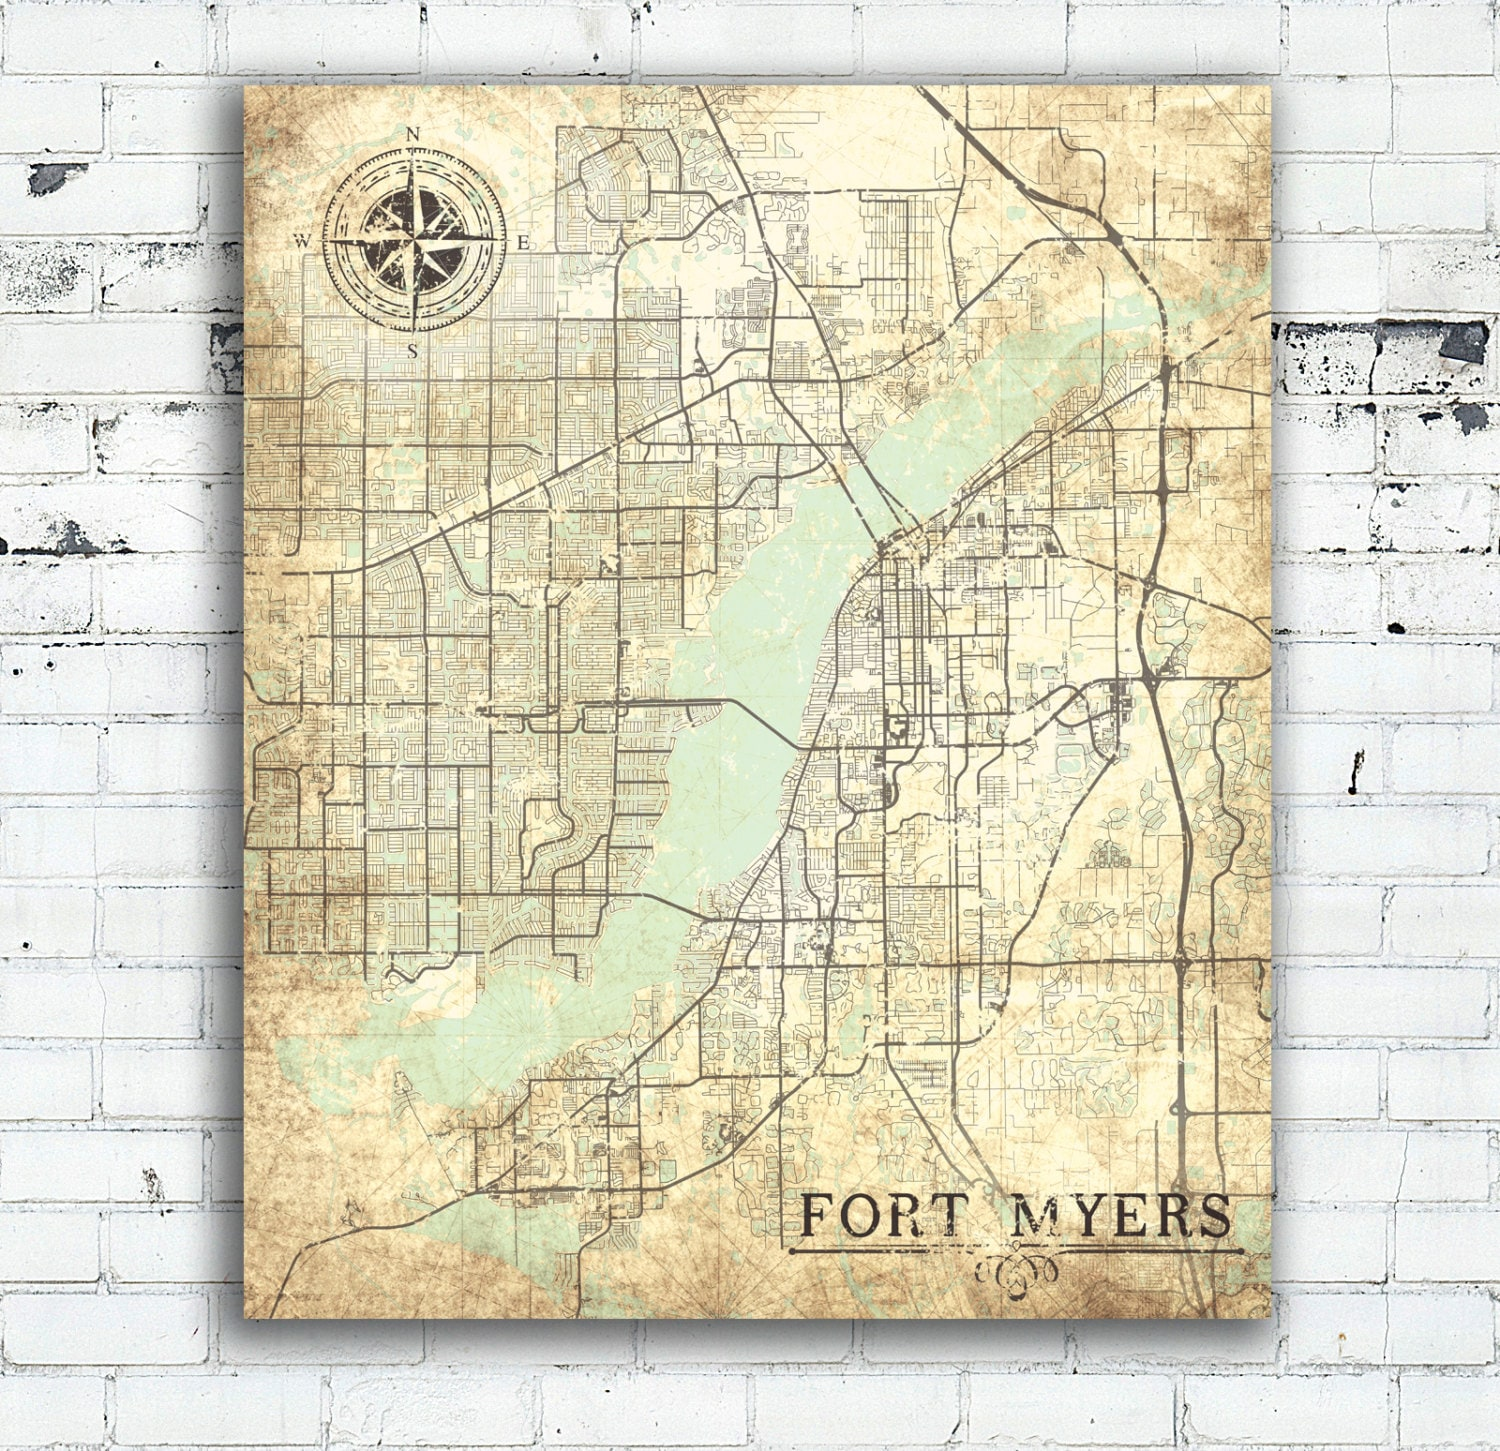 Map Of Fort Myers Florida.Fort Myers Fl Canvas Print Florida Vintage Map Fort Myers Vintage